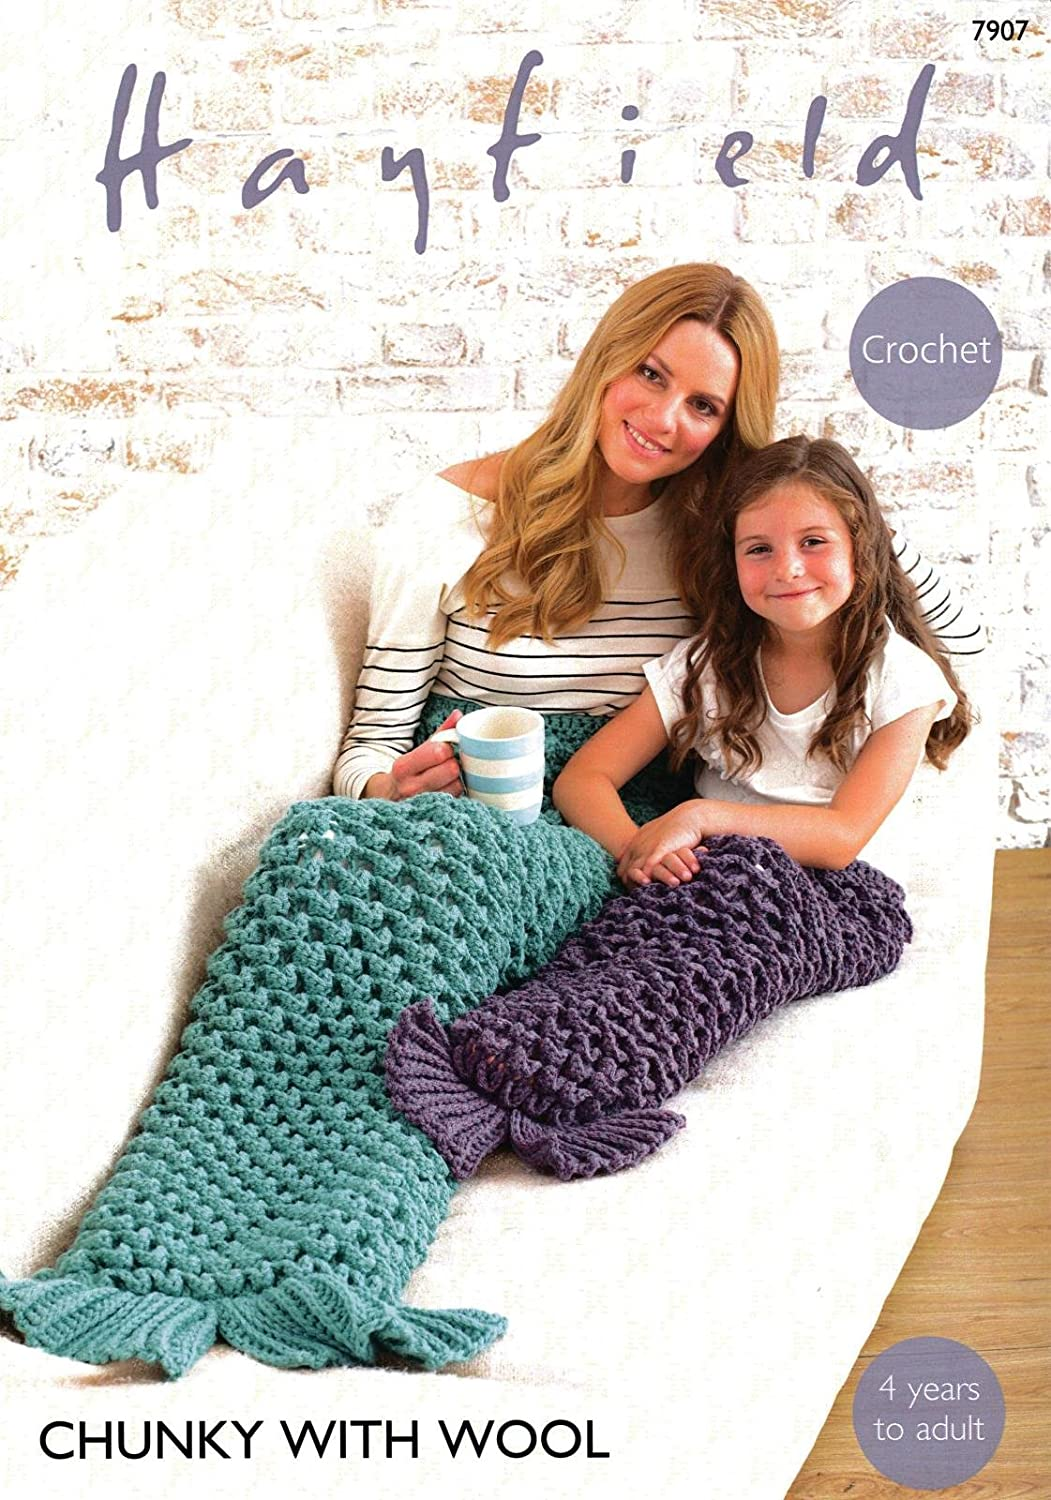 Sirdar 7907 Crochet Pattern Mermaid Tails In Hayfield Chunky With